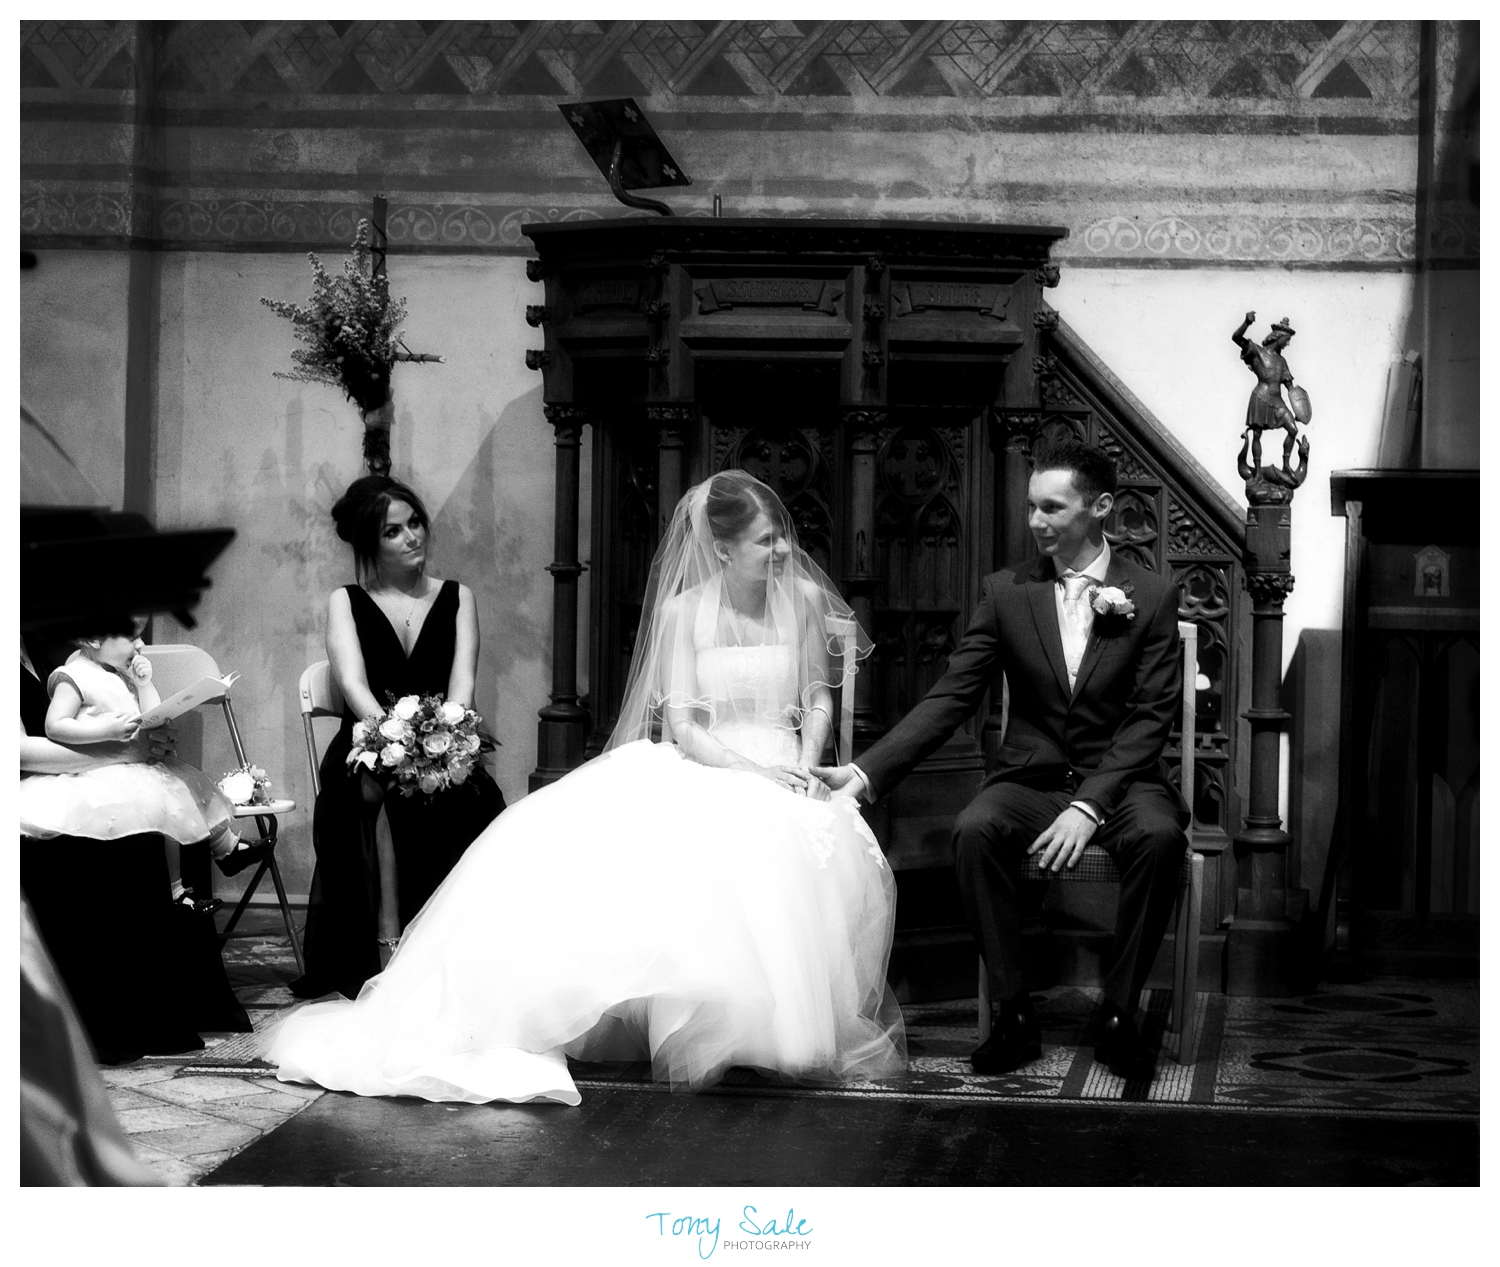 Nikki & Tim's Wedding at St Michael & All Angels Church, Copford